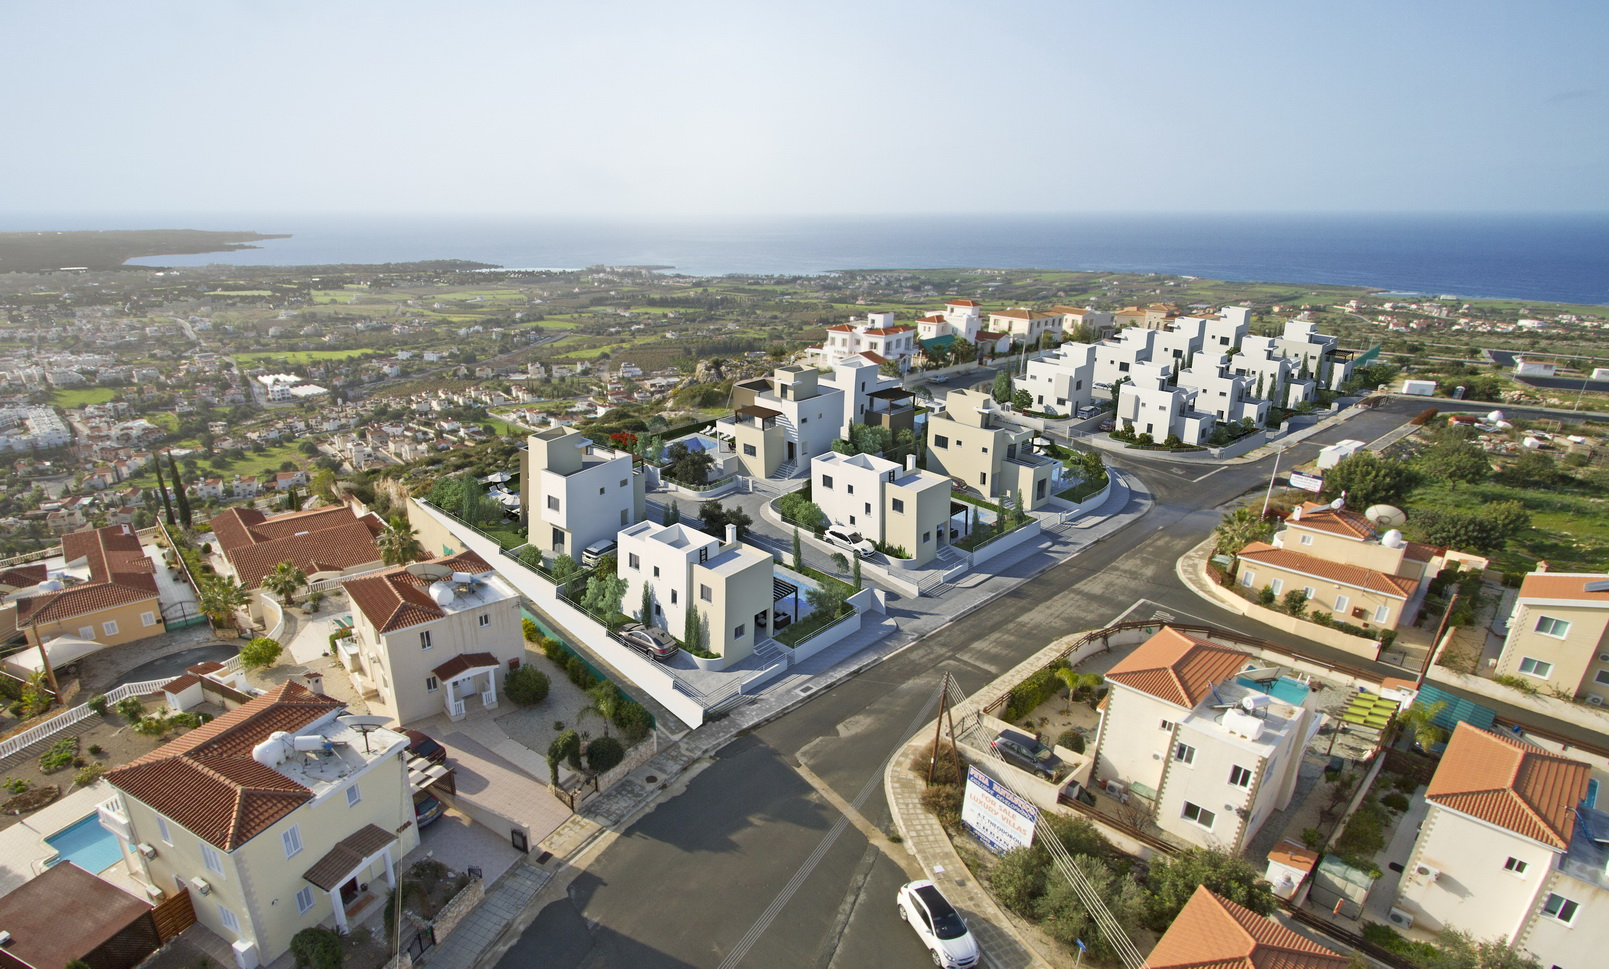 House and flat prices drop in Cyprus